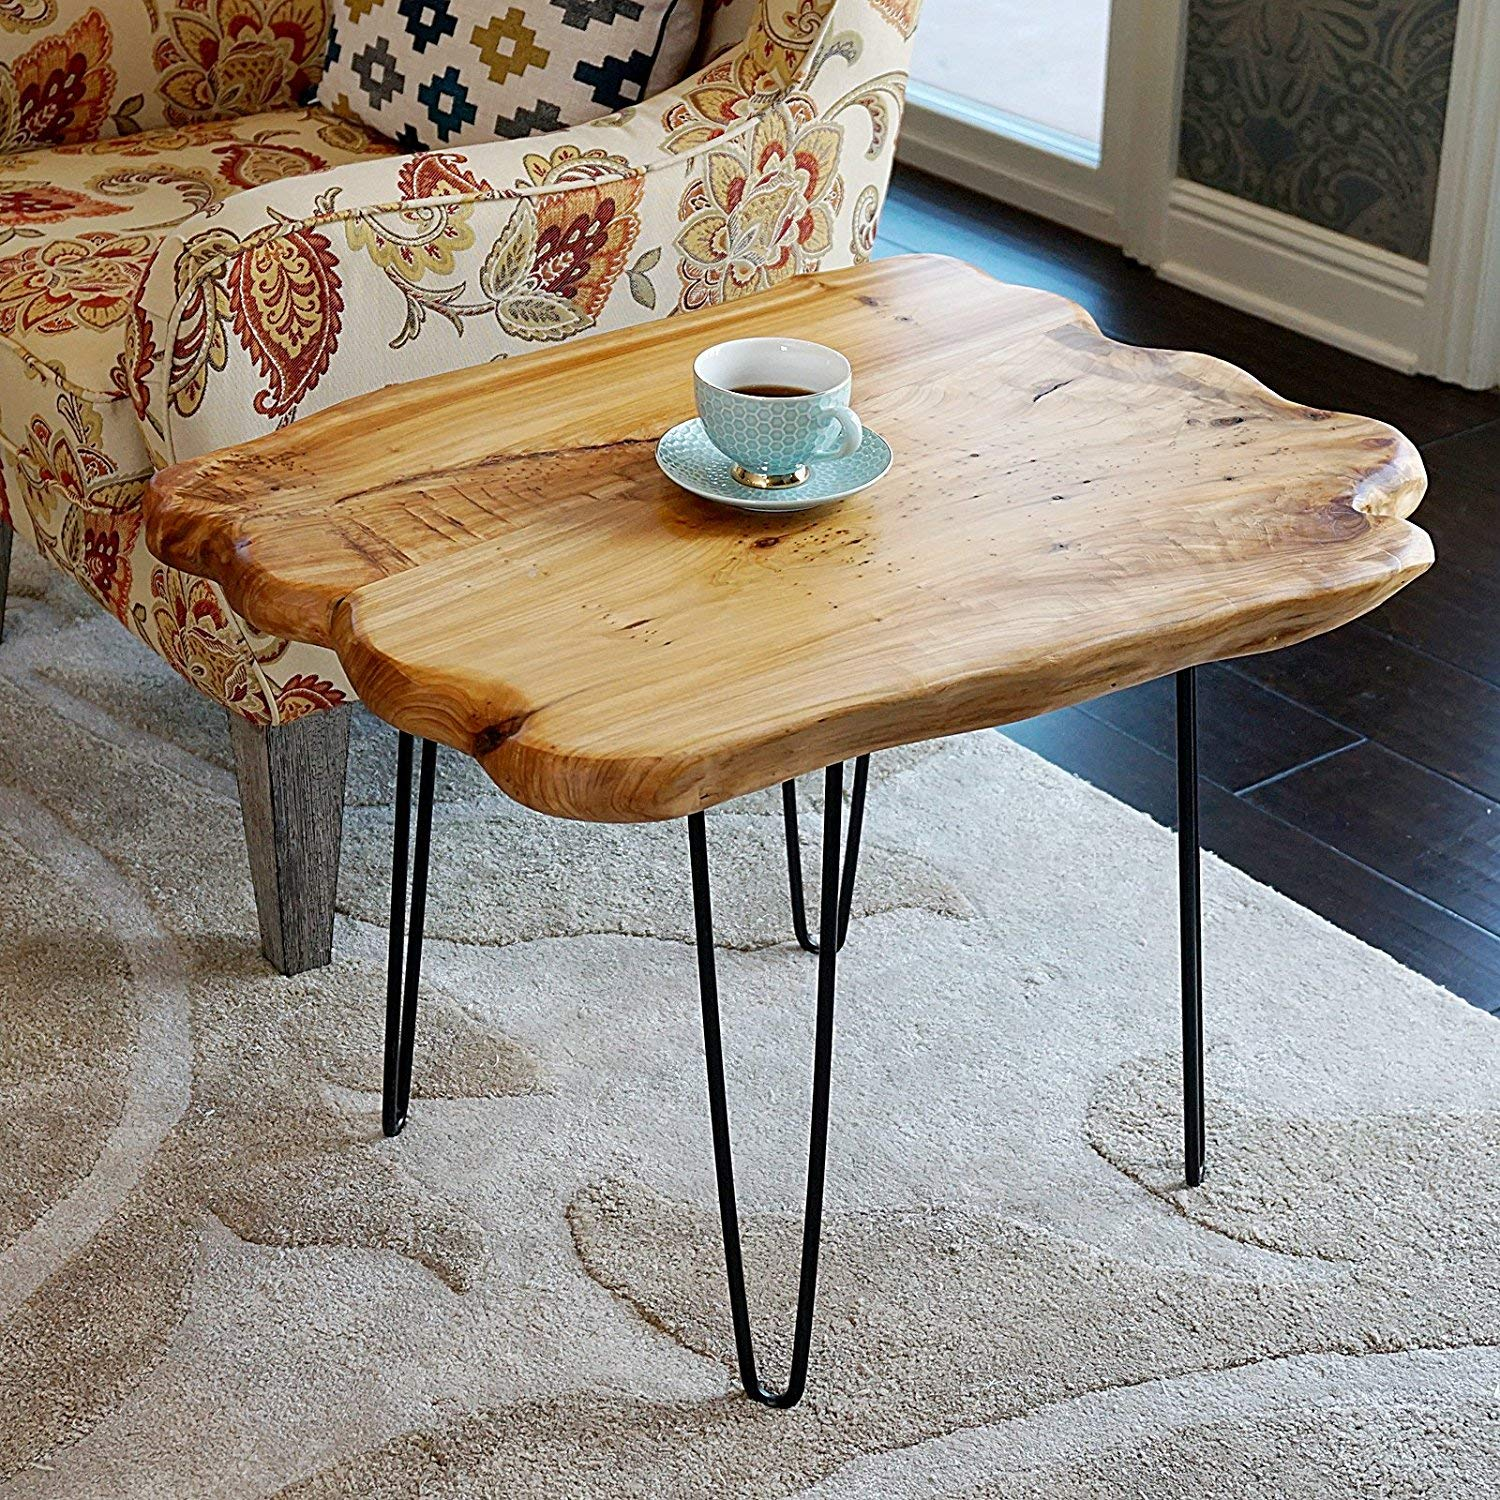 Amazon com welland natural edge coffee table small hairpin coffee table natural wood end table wood slab table 28 l x 20 w x 20 5 t kitchen dining